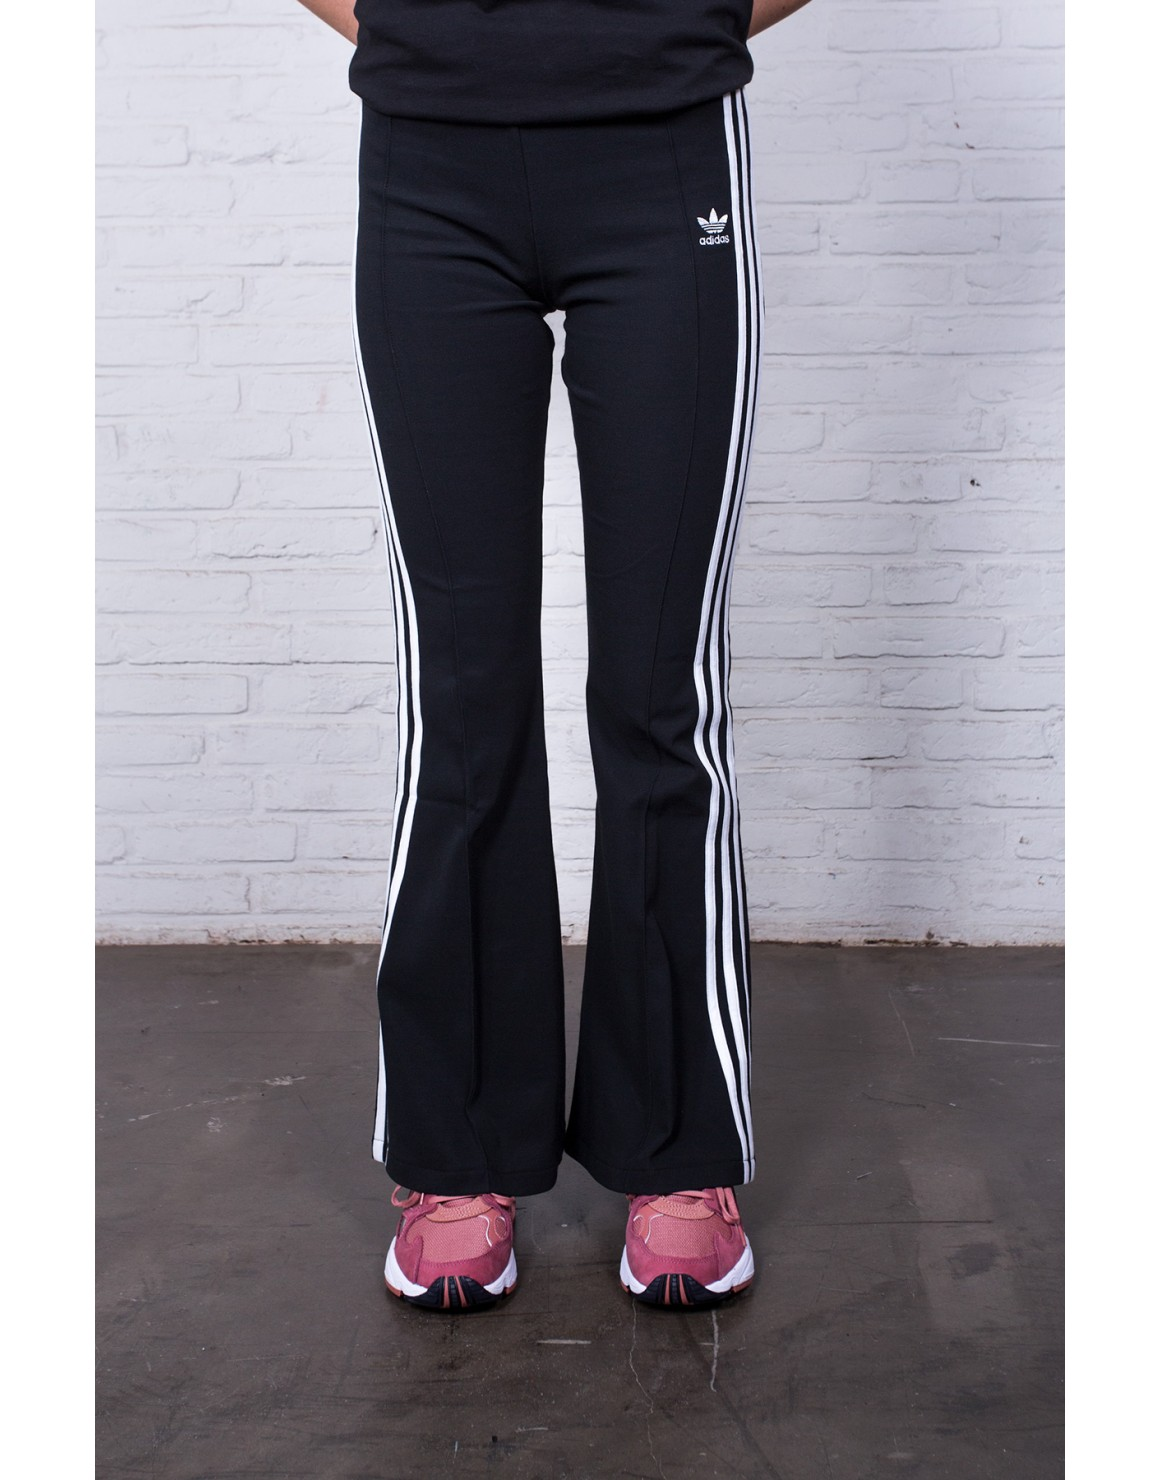 discount shop buy online Super discount Flared Track Pants